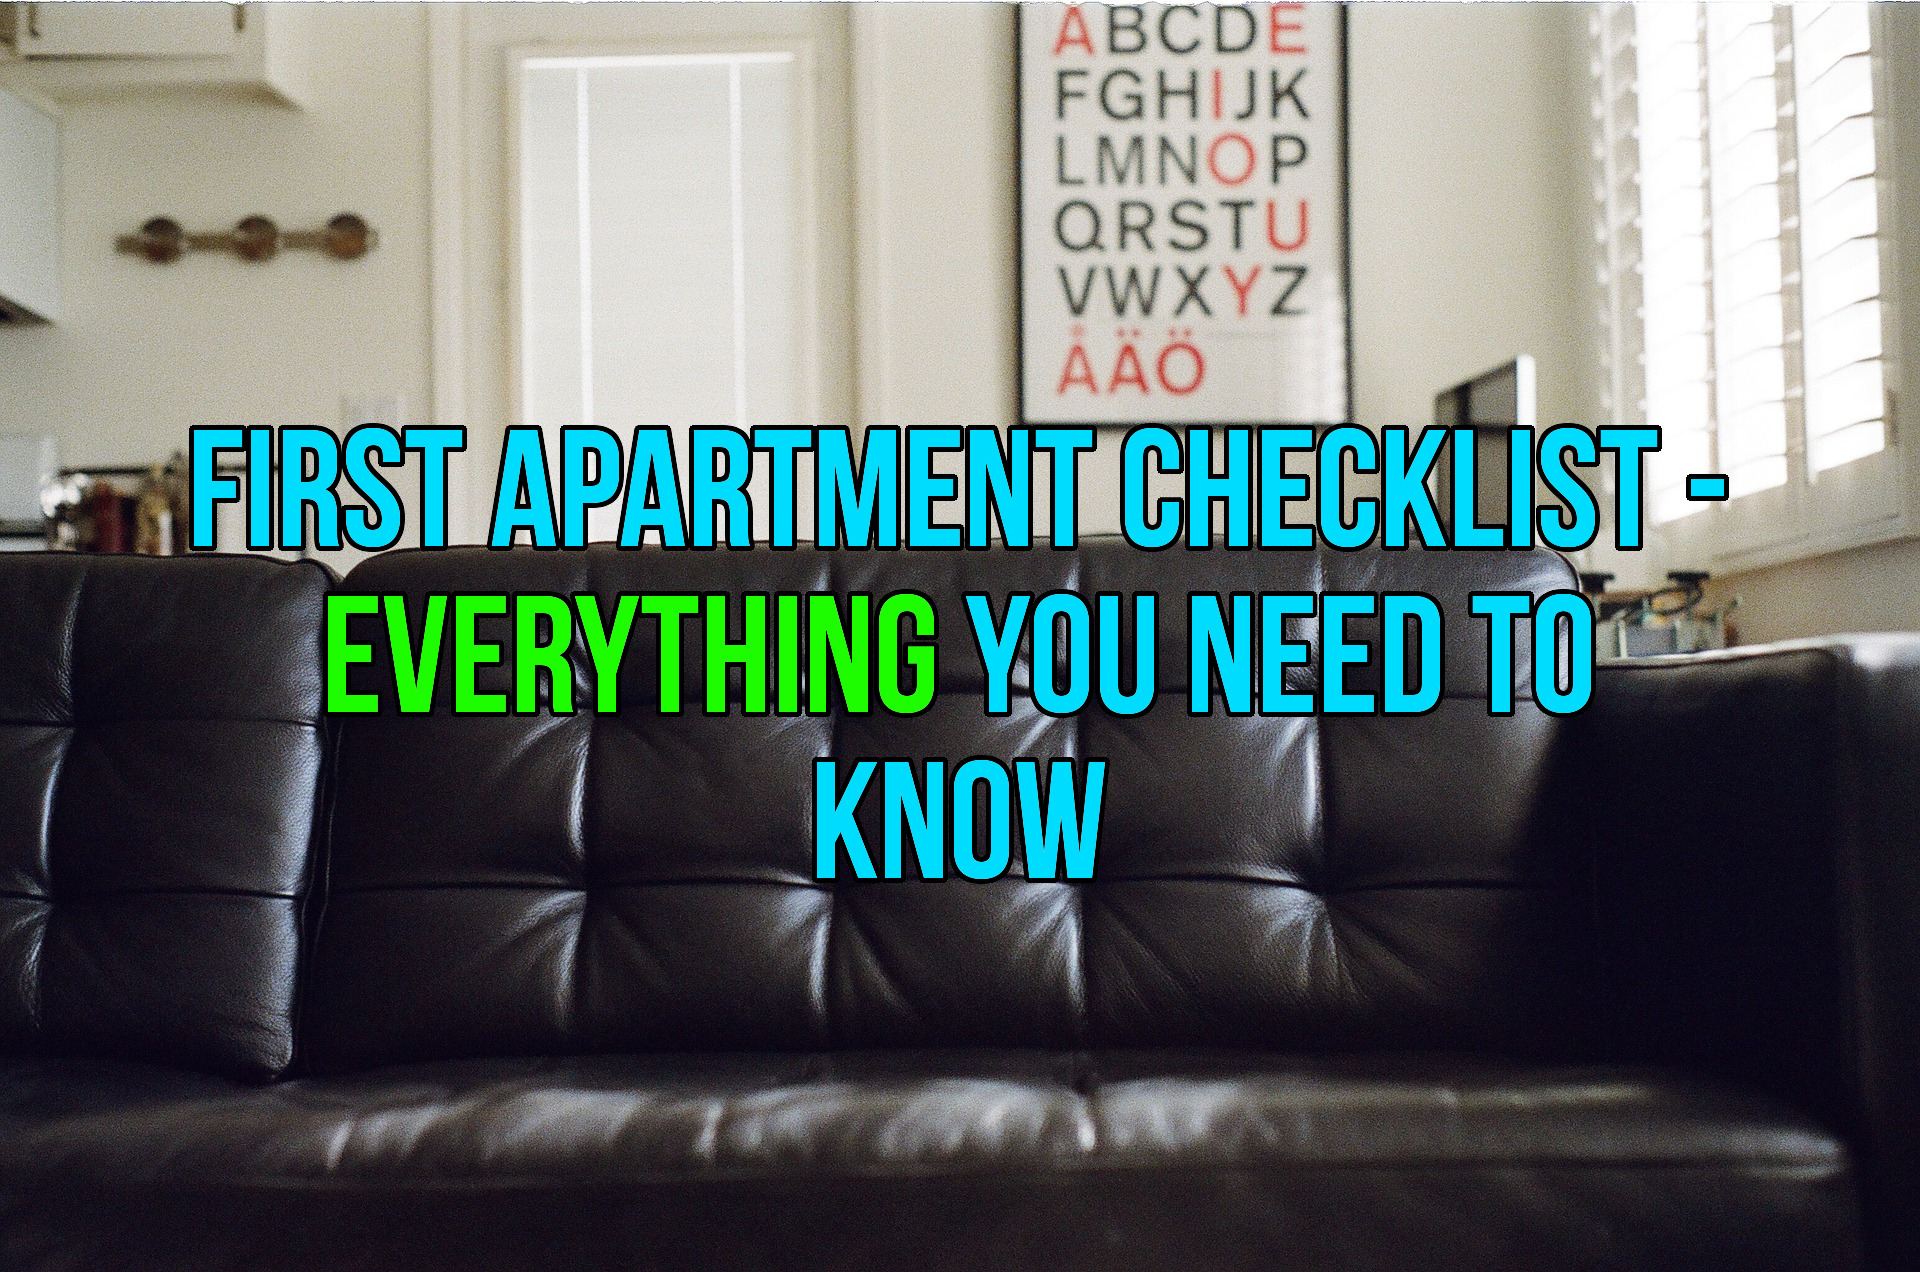 First Apartment Checklist